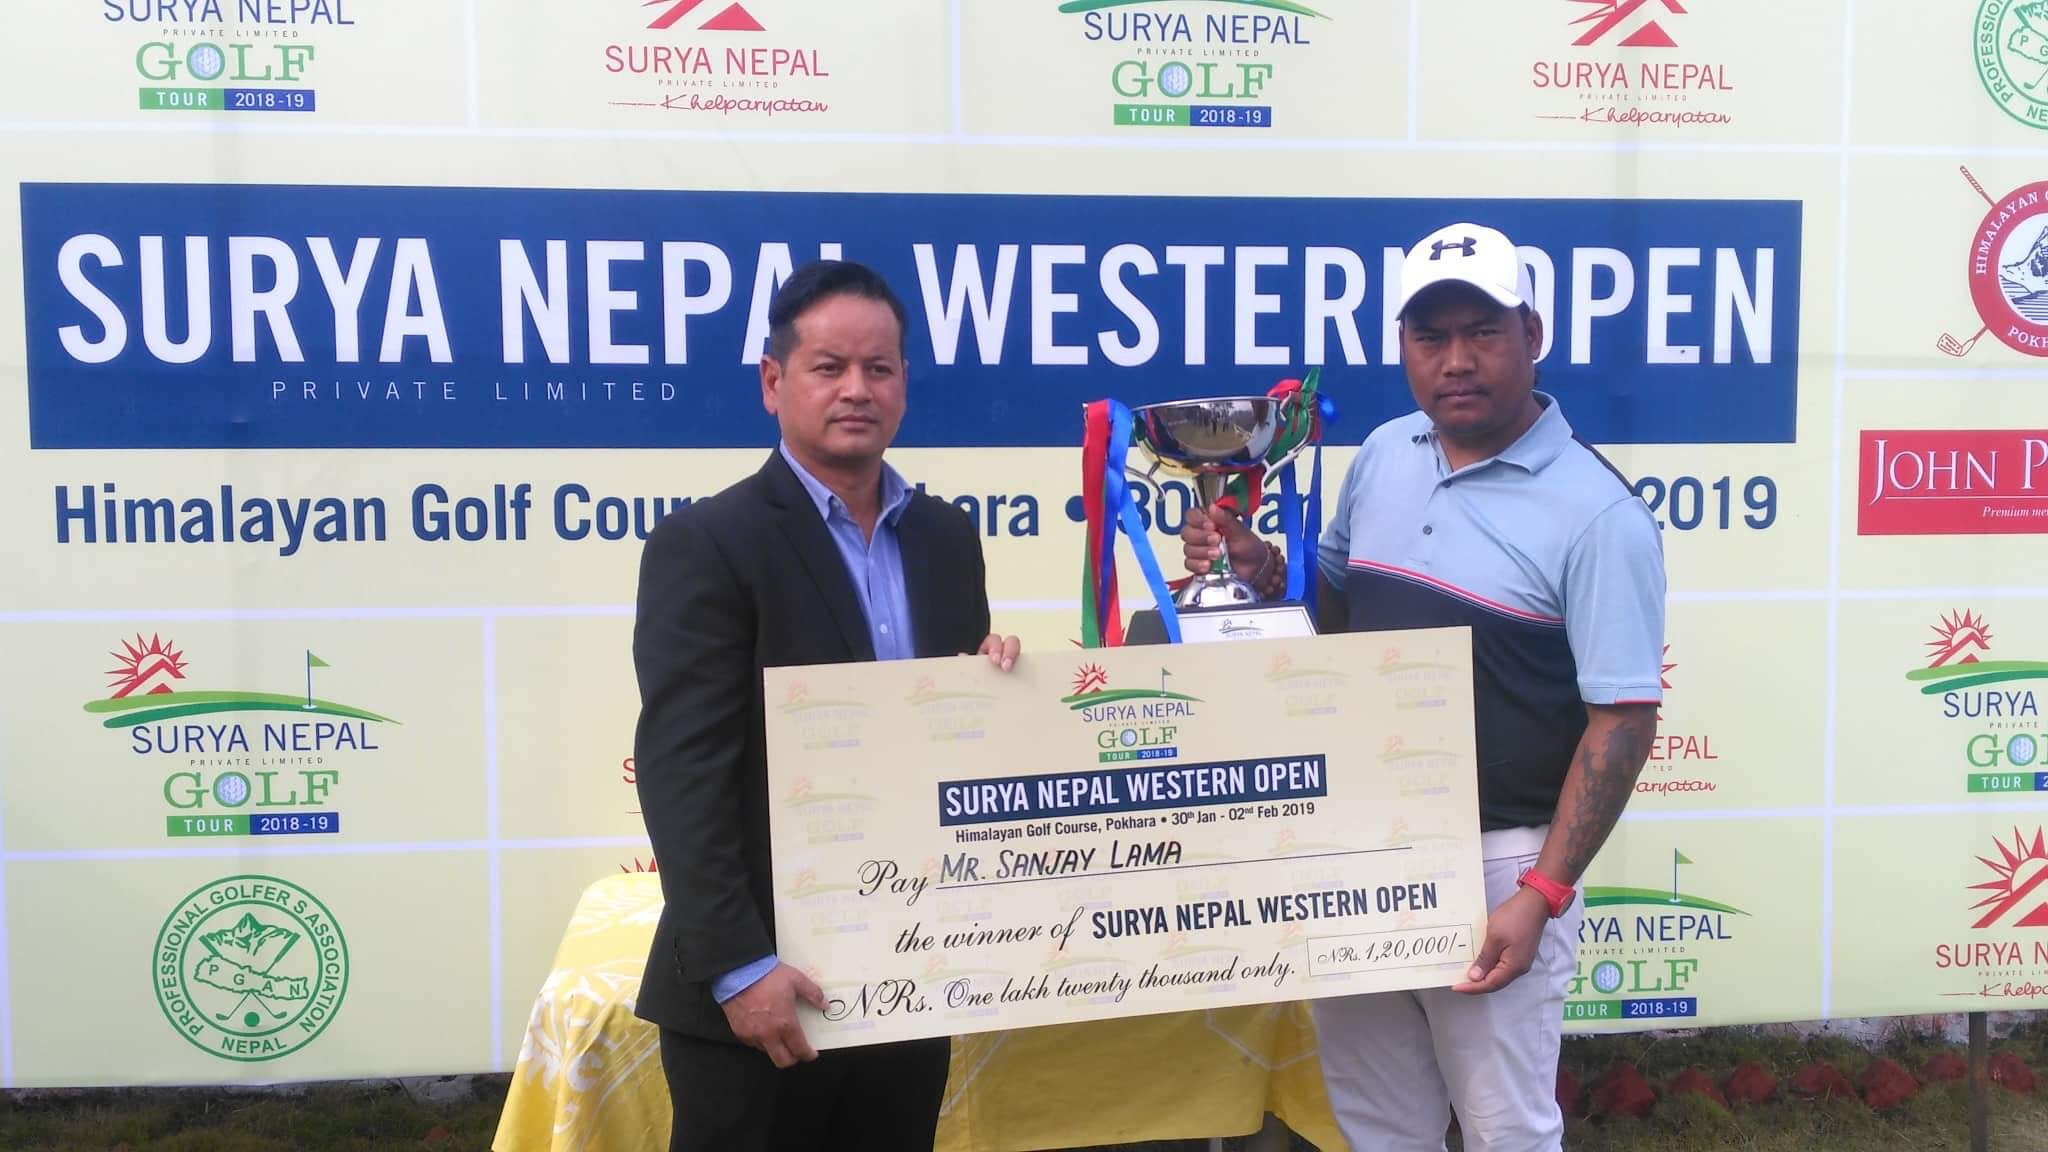 Brand Manager of Surya Nepal Pvt Ltd Keshav Pradhan handing over the trophy and cheque to Sanjay Lama (right) after the Surya Nepal Western Open at the Himalayan Golf Course in Pokhara on Friday. Photo: THT